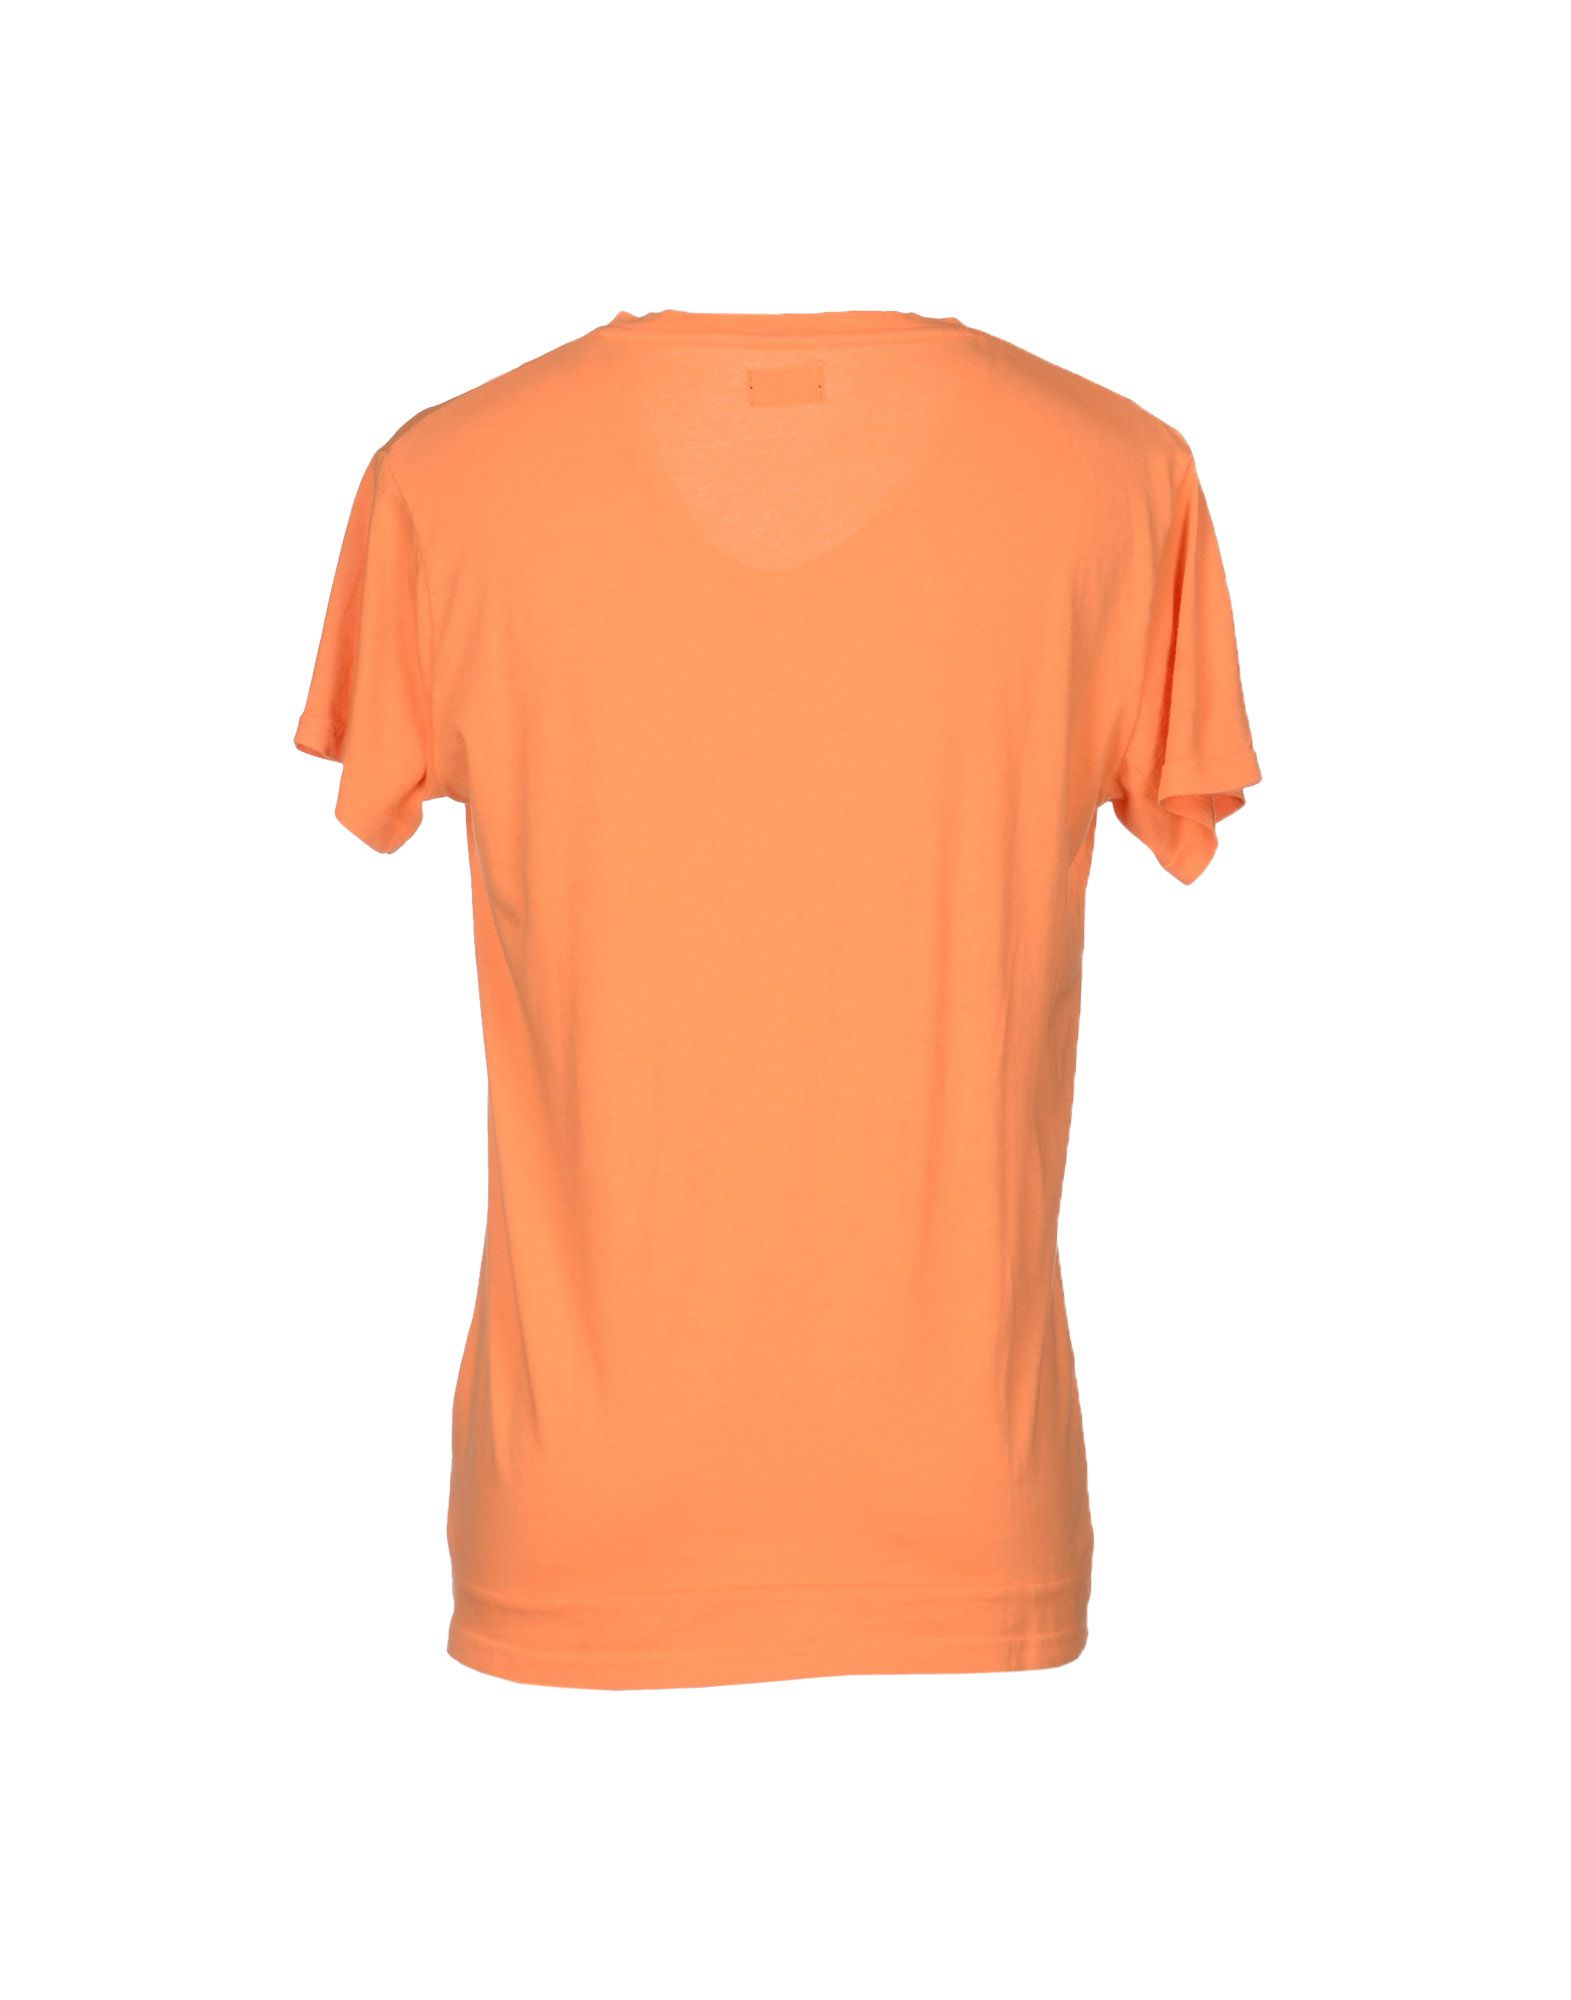 Cheap monday t shirt in orange for men lyst for Best inexpensive t shirts